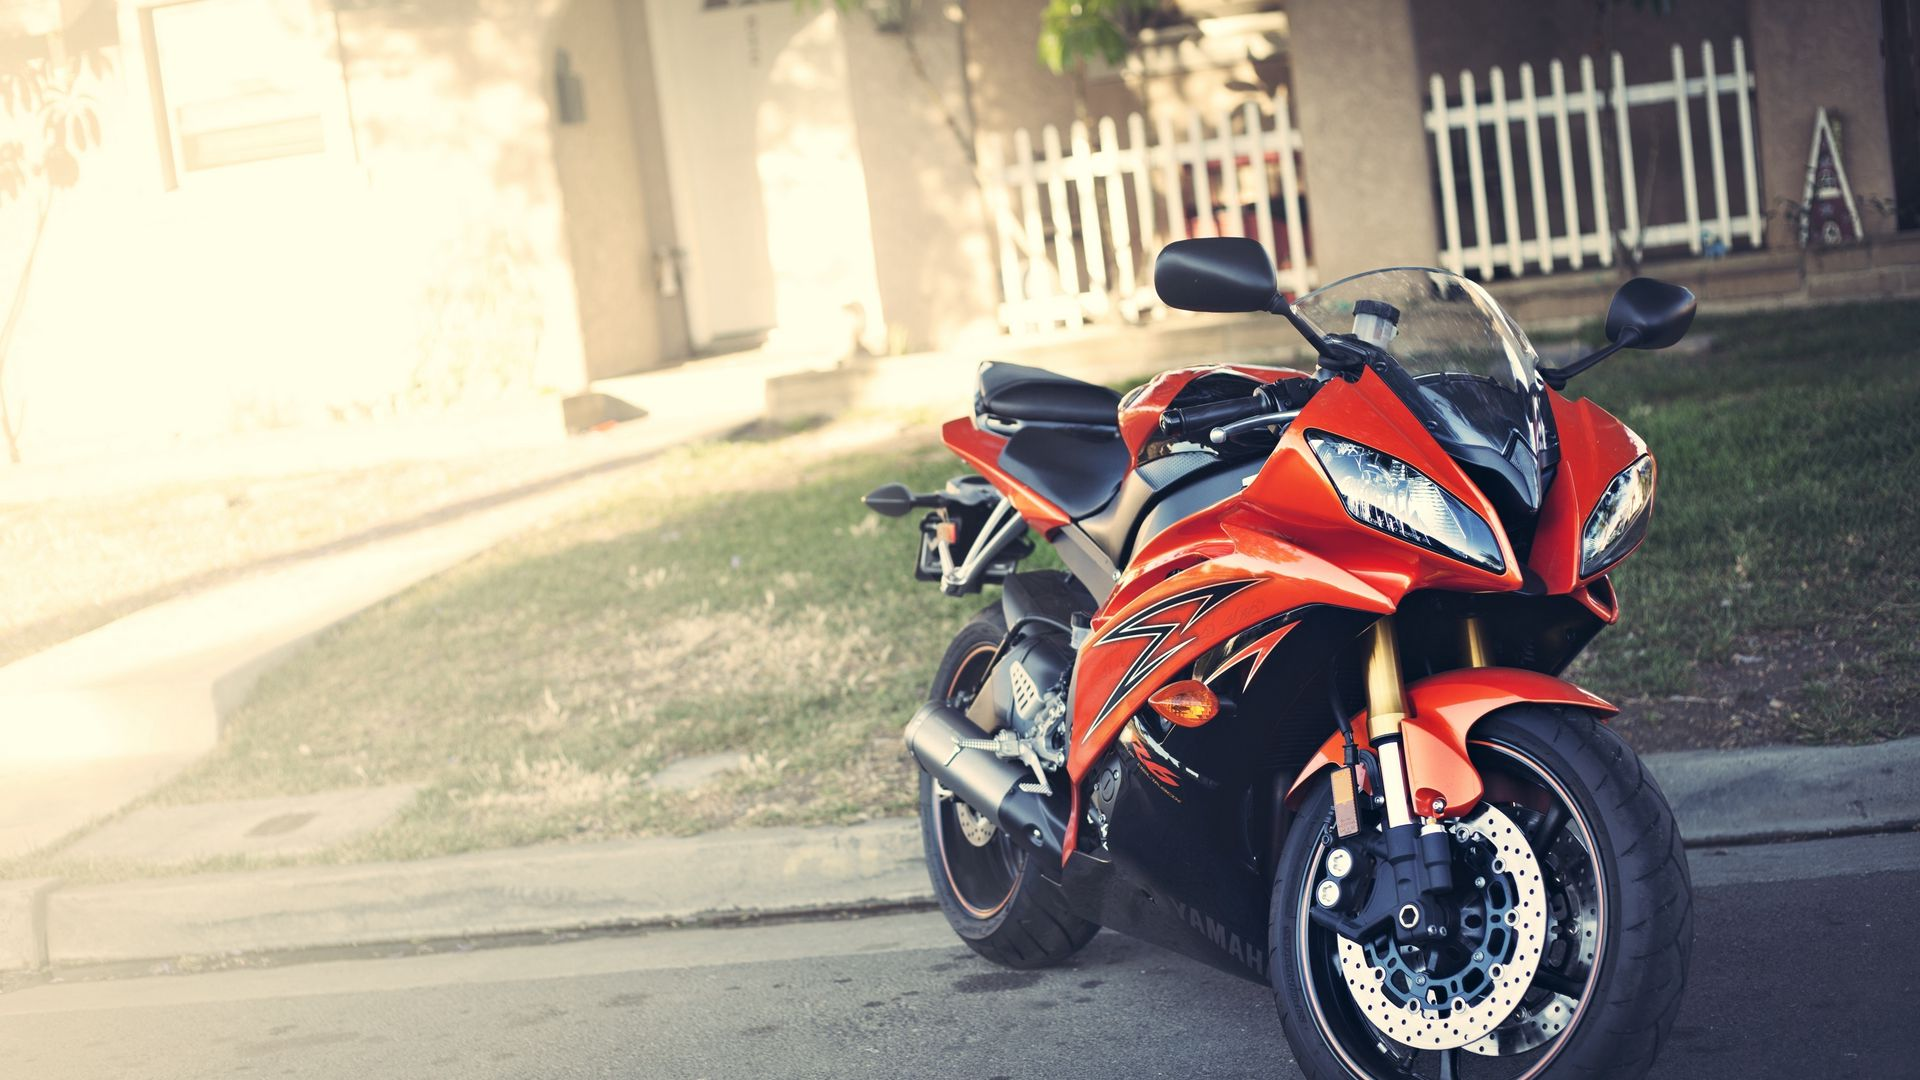 Yamaha Yzf R6, Red, Motorcycle Wallpapers Free Download